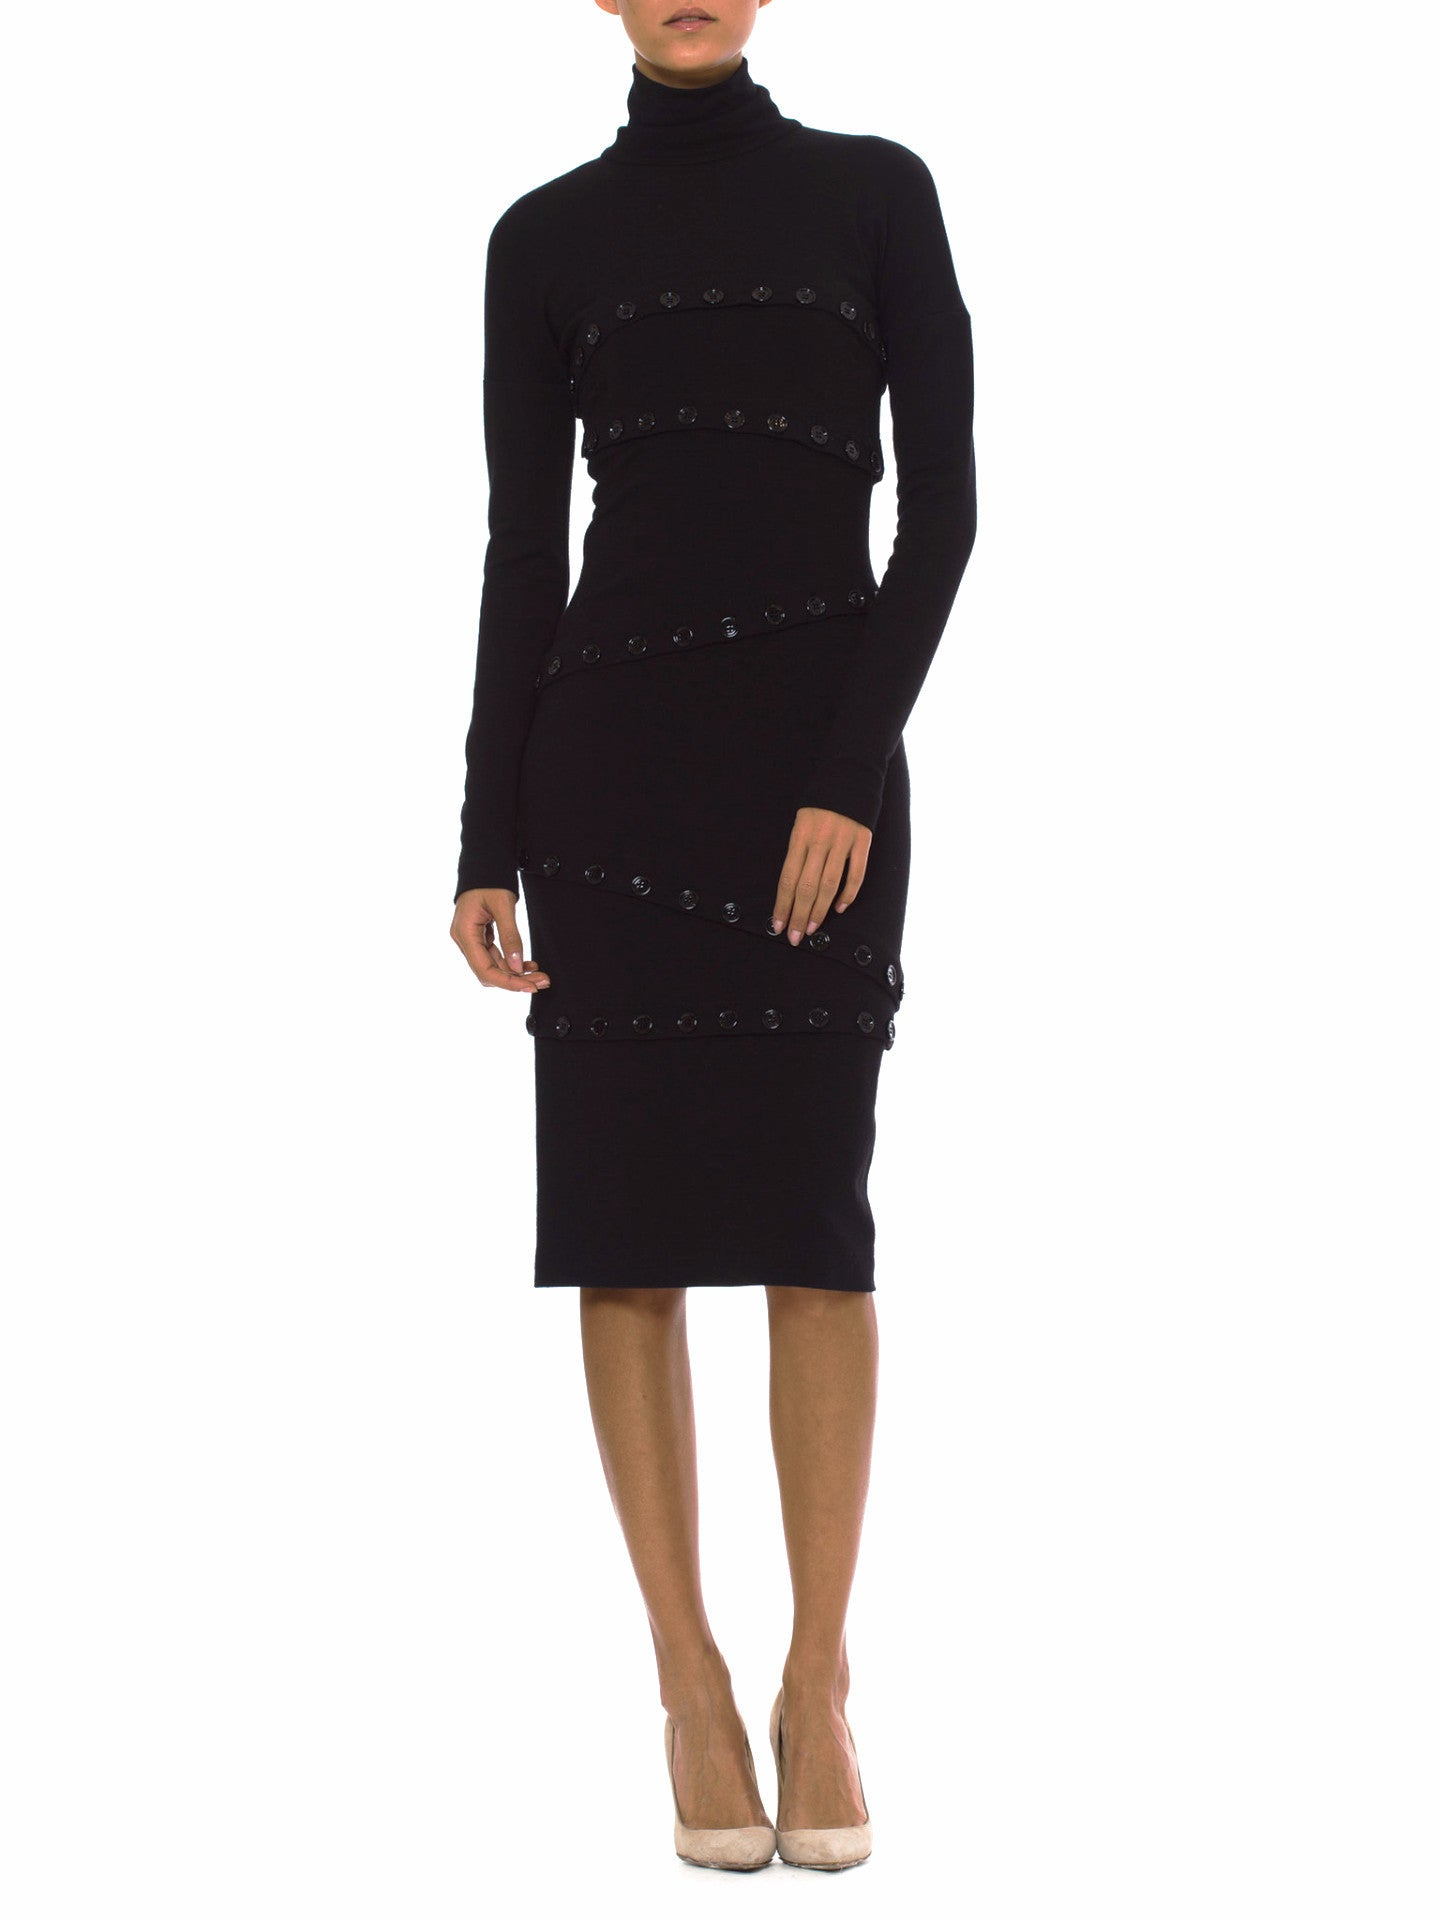 1990s DOLCE & GABBANA Sleek Black Turtleneck Virgin Wool Sweater Dress